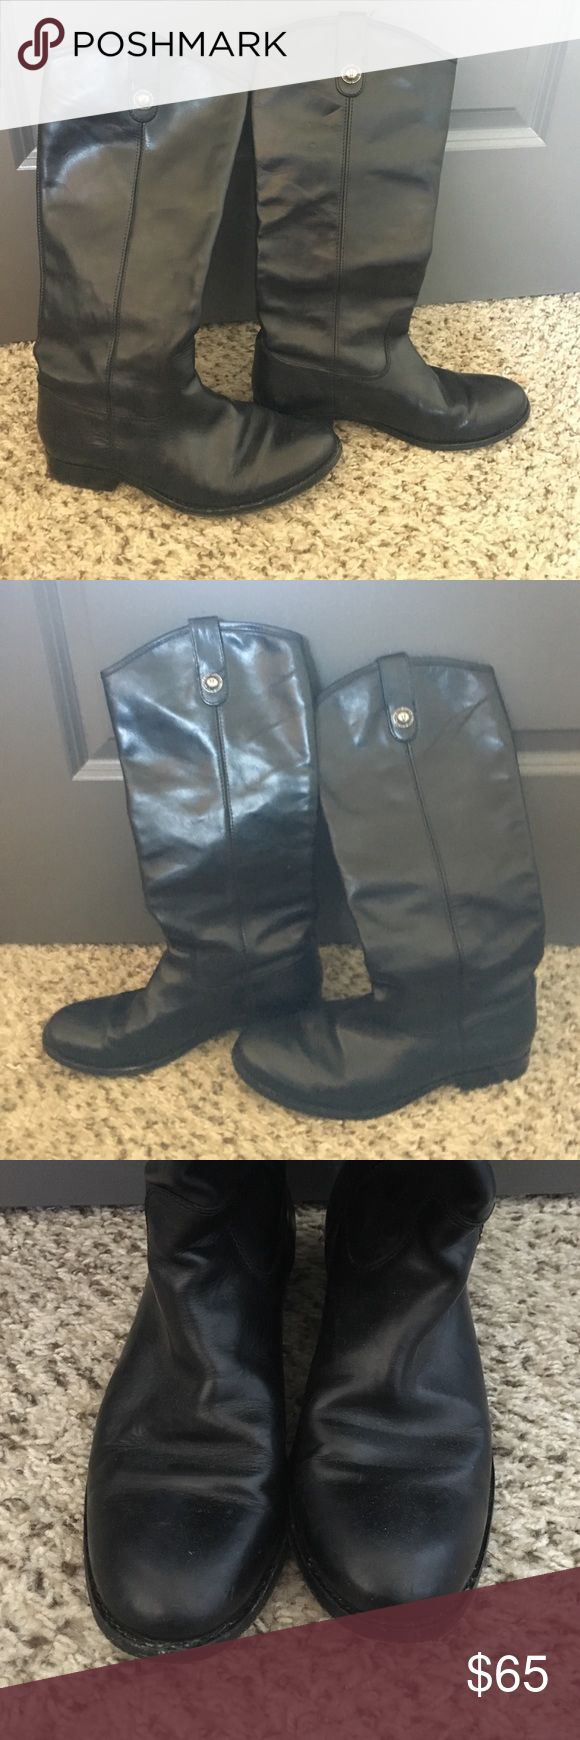 Frye Riding Boots Black Frye Riding Boots in amazing condition! They are naturally a more worn and casual style. Frye Shoes Combat & Moto Boots